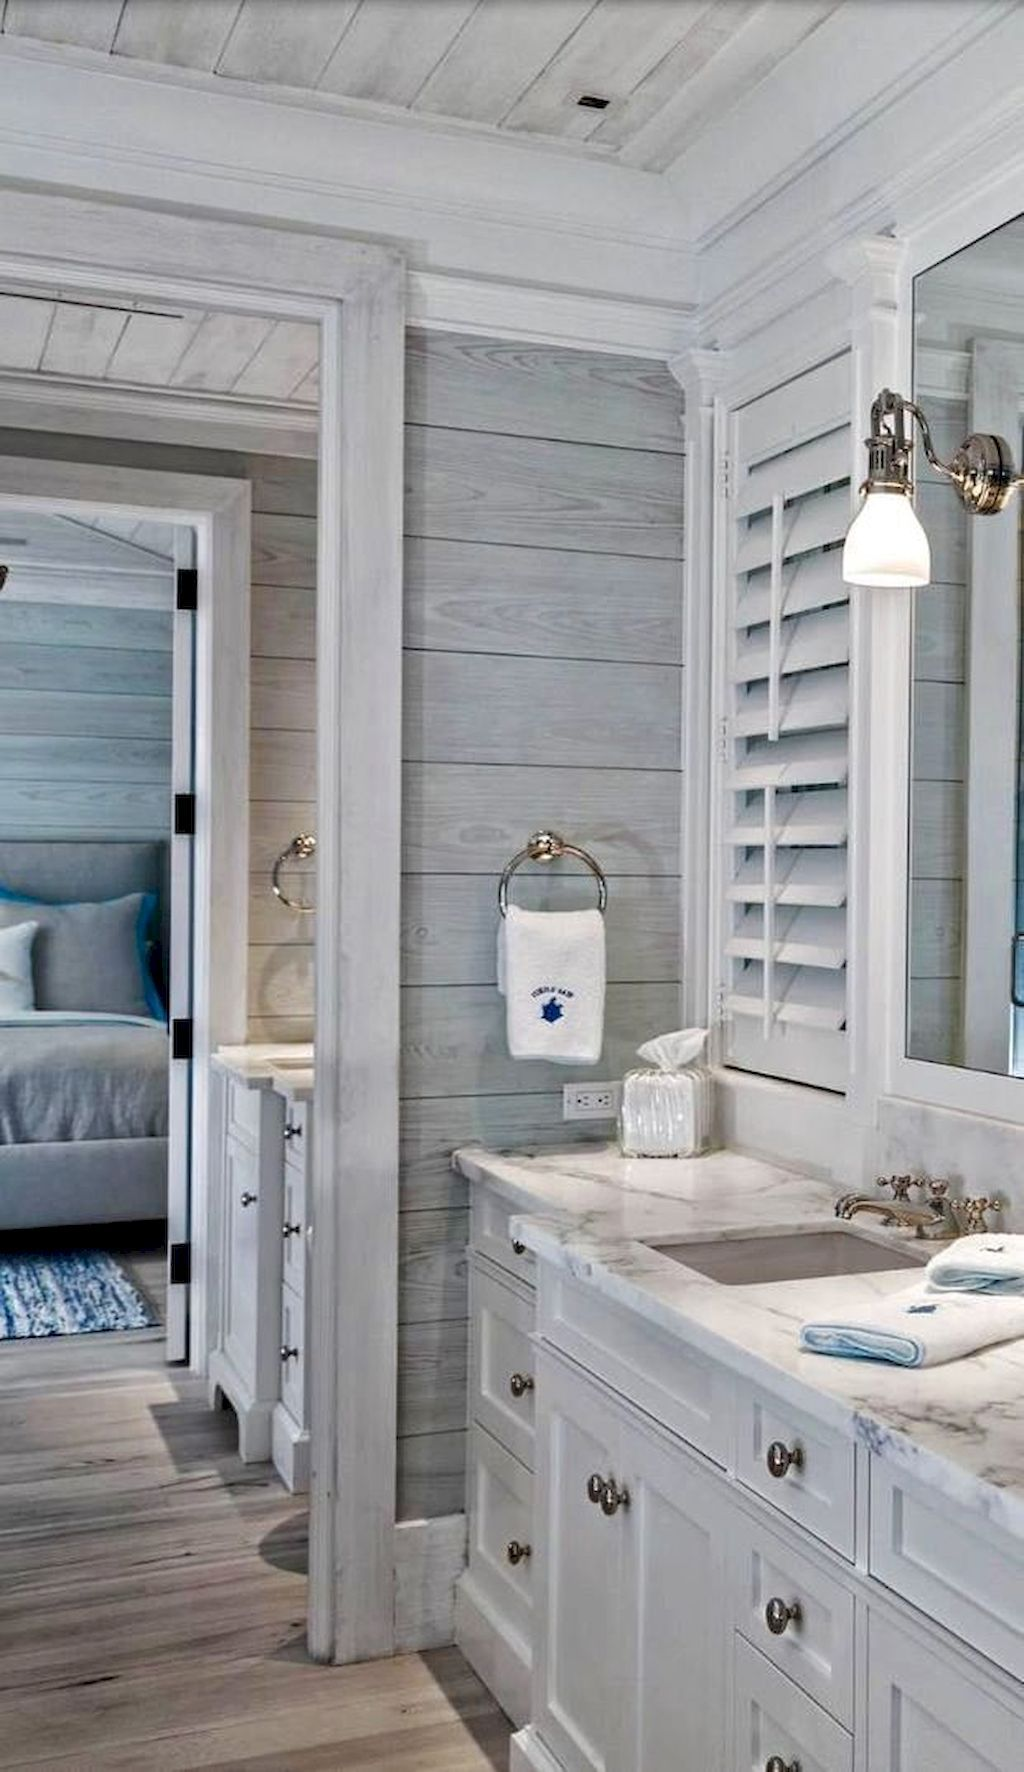 Cool 35 Awesome Coastal Style Nautical Bathroom Designs Ideas Https Decorapartment